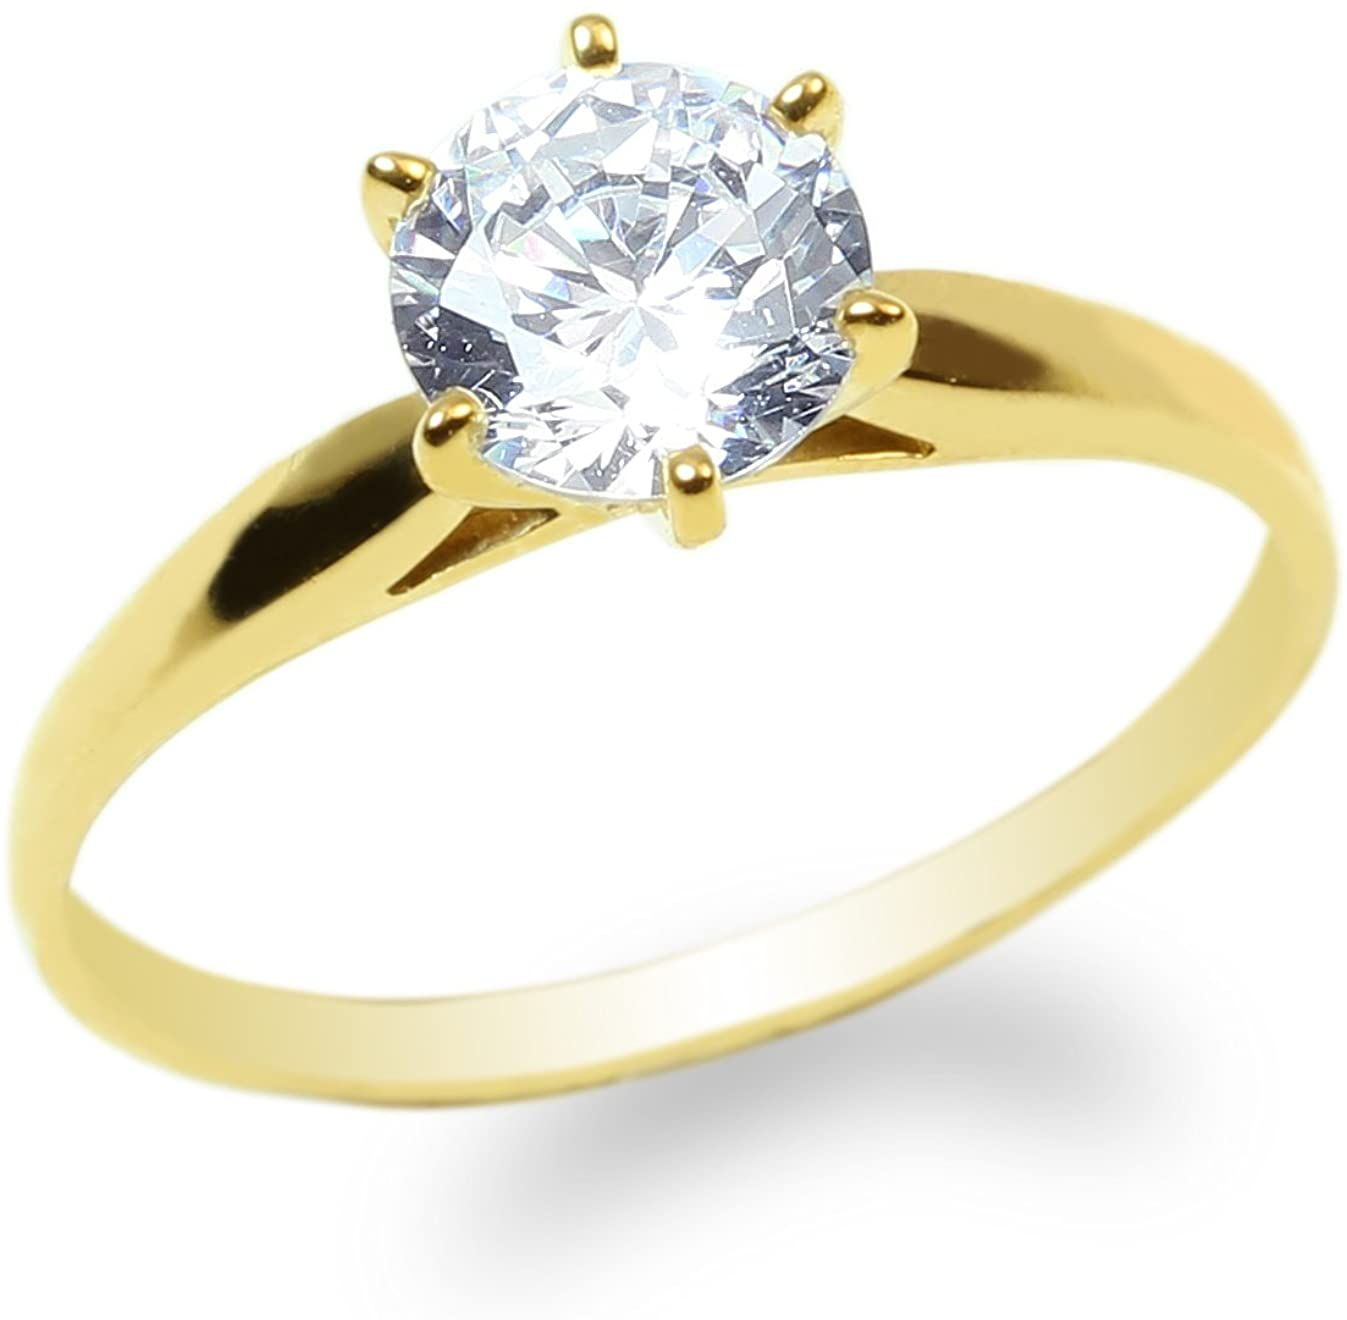 Jamesjenny Ladies 10k Yellow Gold 0 9ct Round Cz Engagement Solitaire Ring Size 4 8 You Can Find More D In 2020 Perfect Engagement Ring Engagement Rings Ring Designs